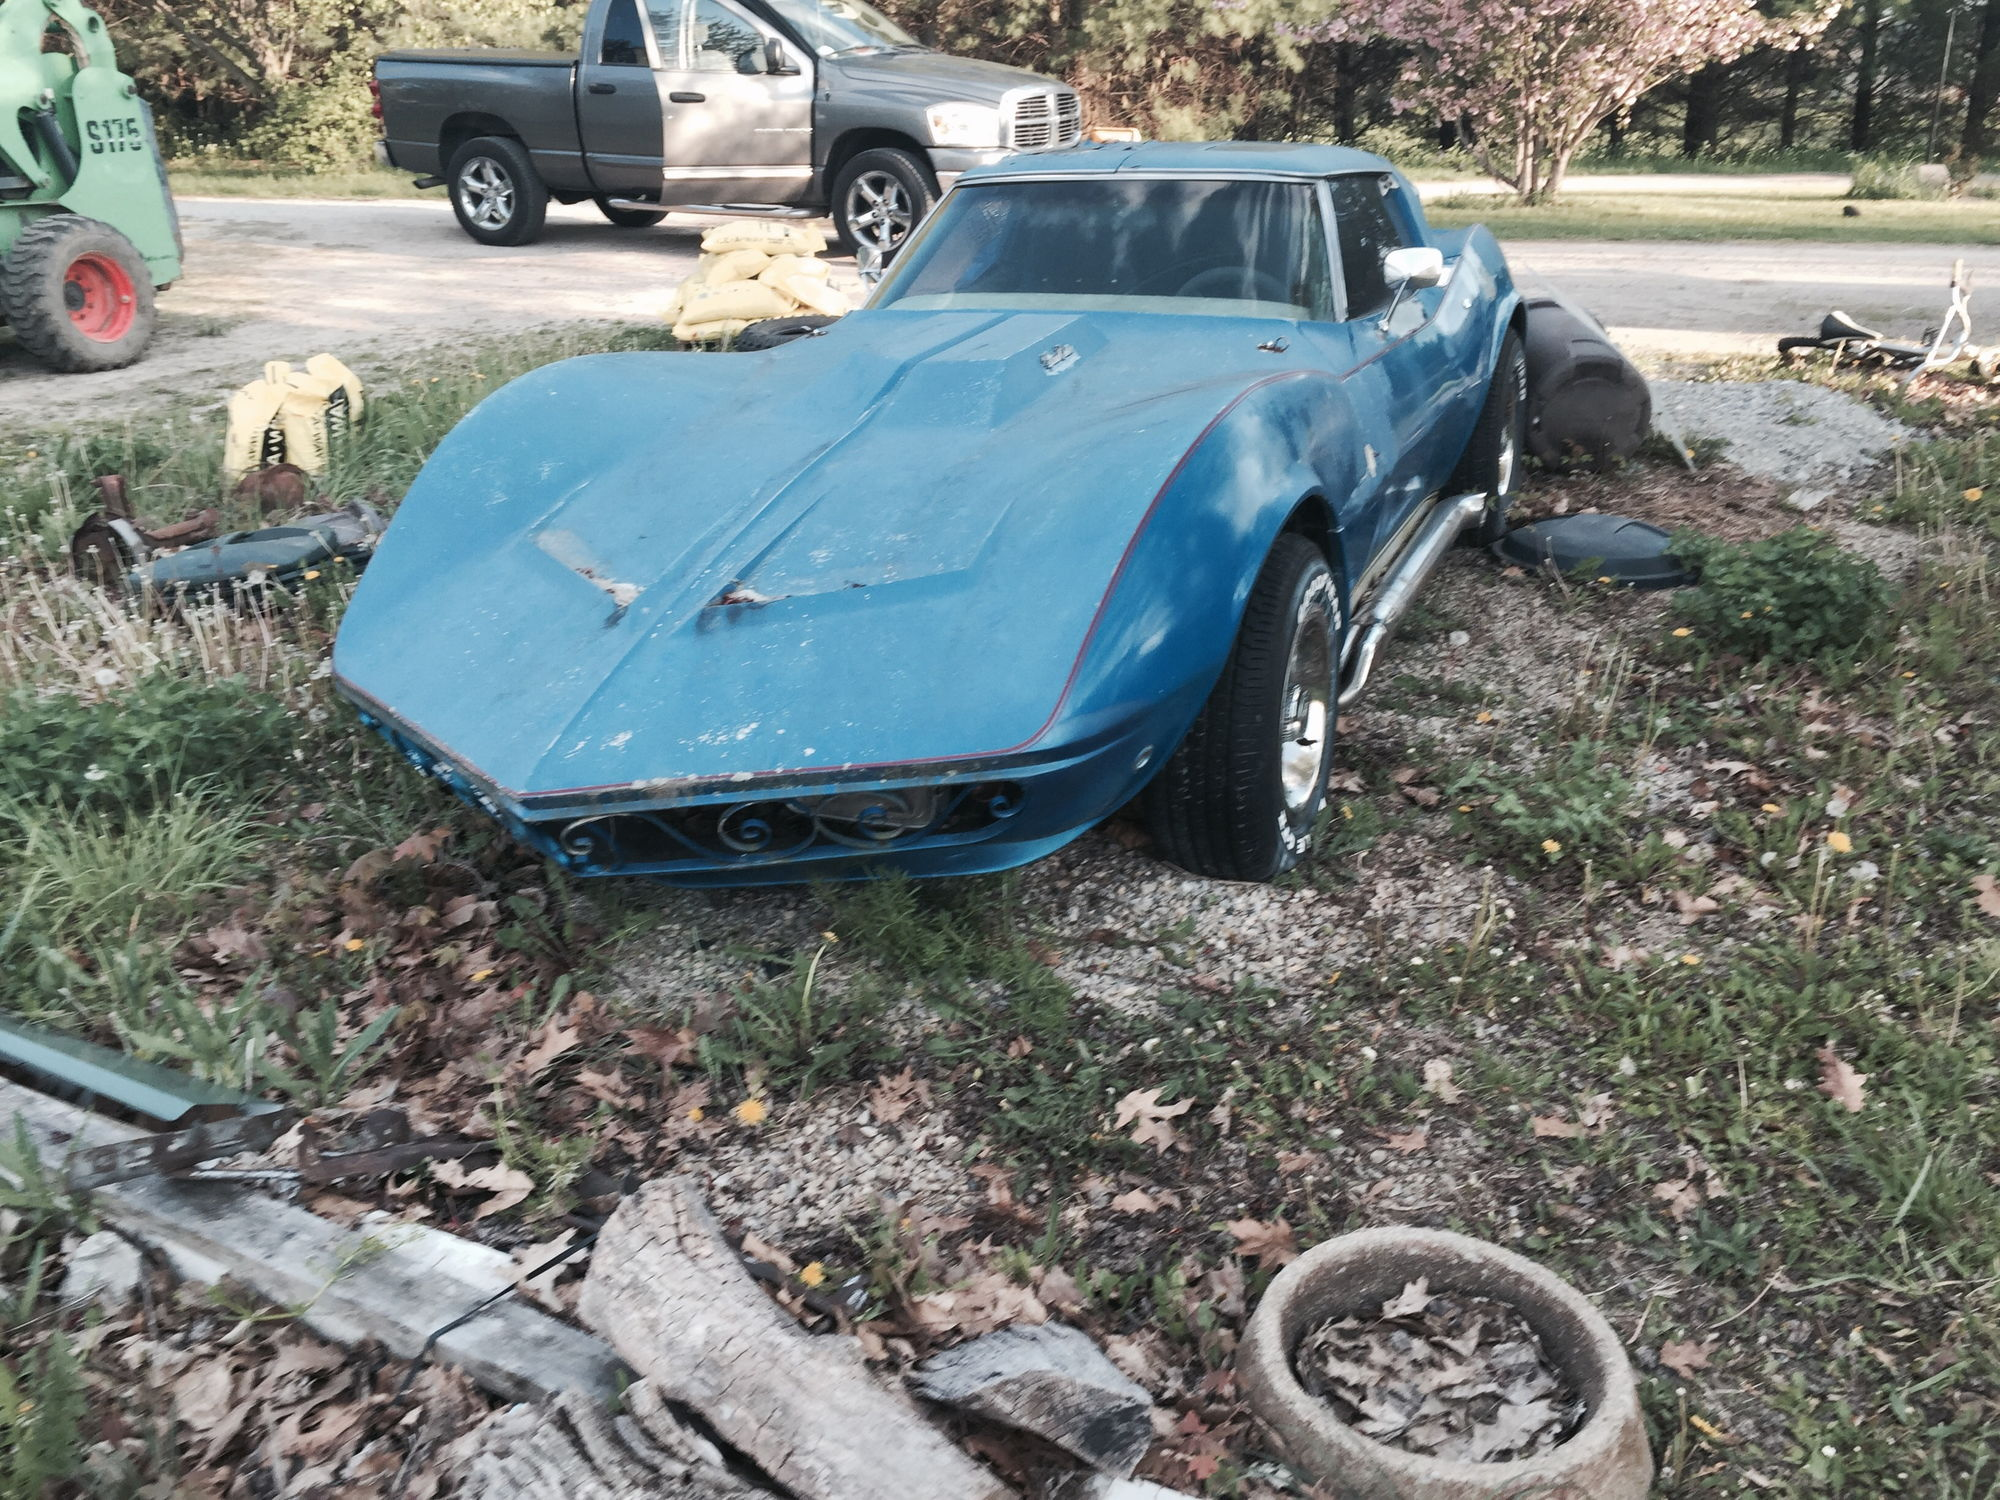 br i recently aquired a 1975 mako shark corvette it s in rough shape clear coat peeling been sitting a long time the previous owner said it was one of